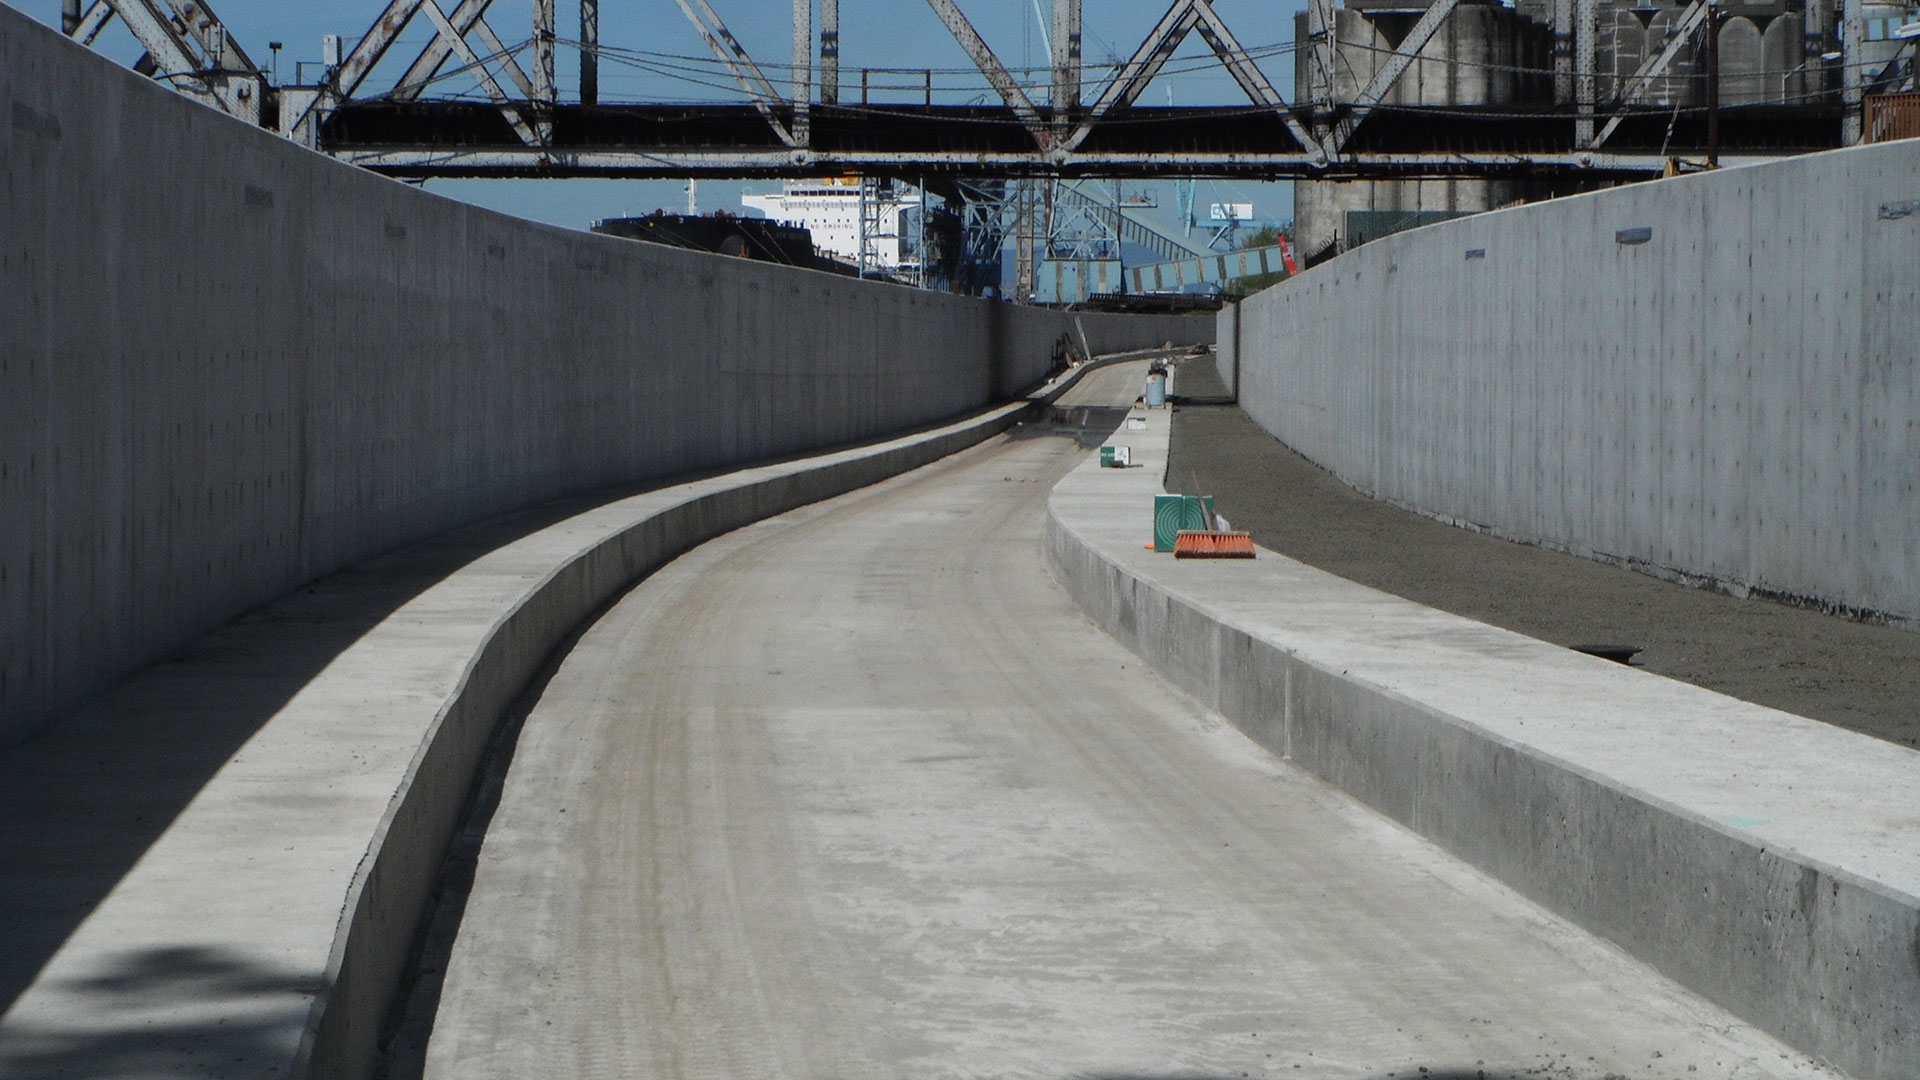 West Vancouver Freight Access Rail Trench - under construction